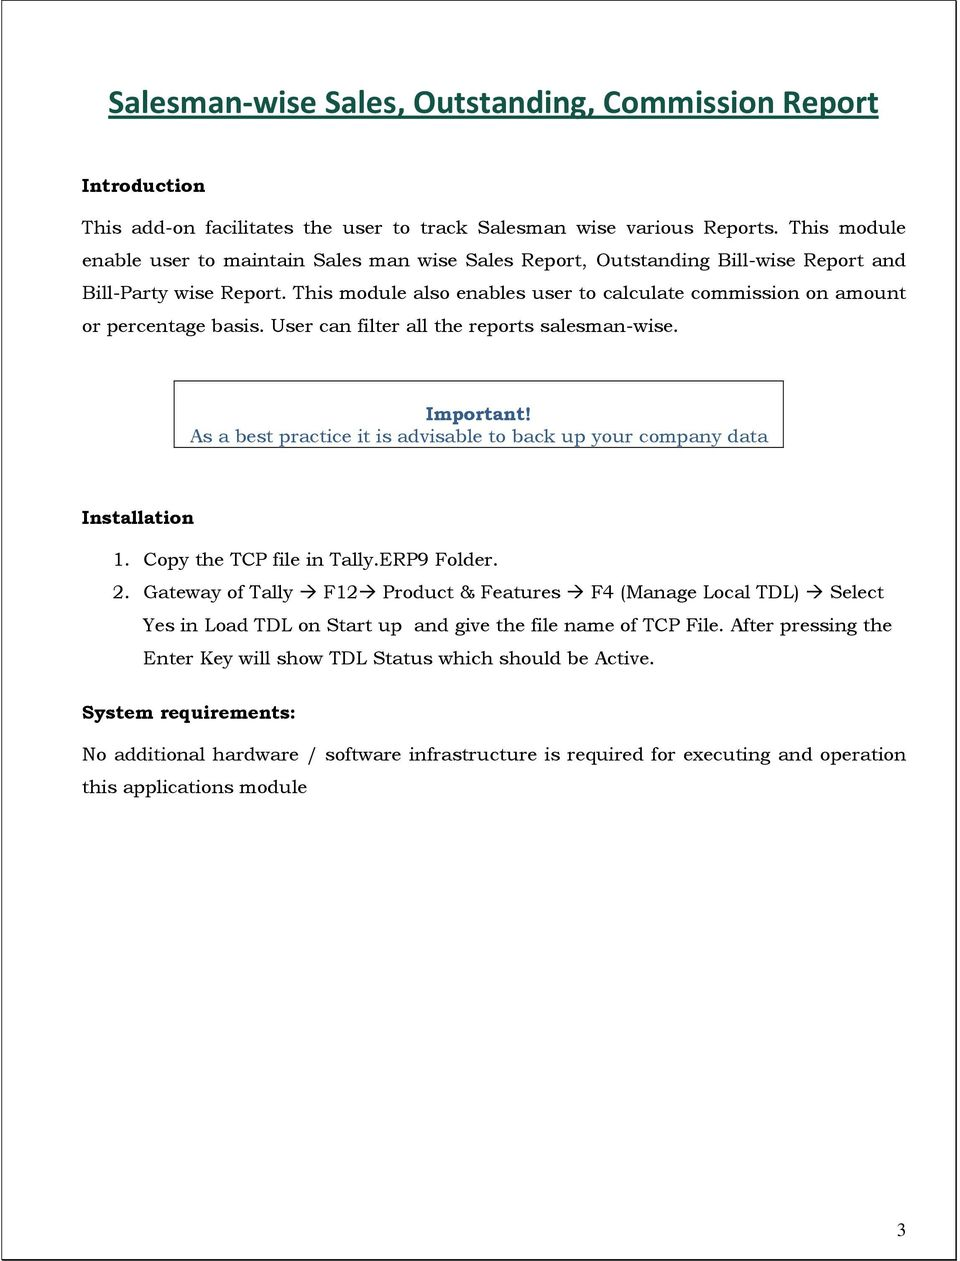 Salesman-wise Sales, Outstanding, Commission Report - PDF